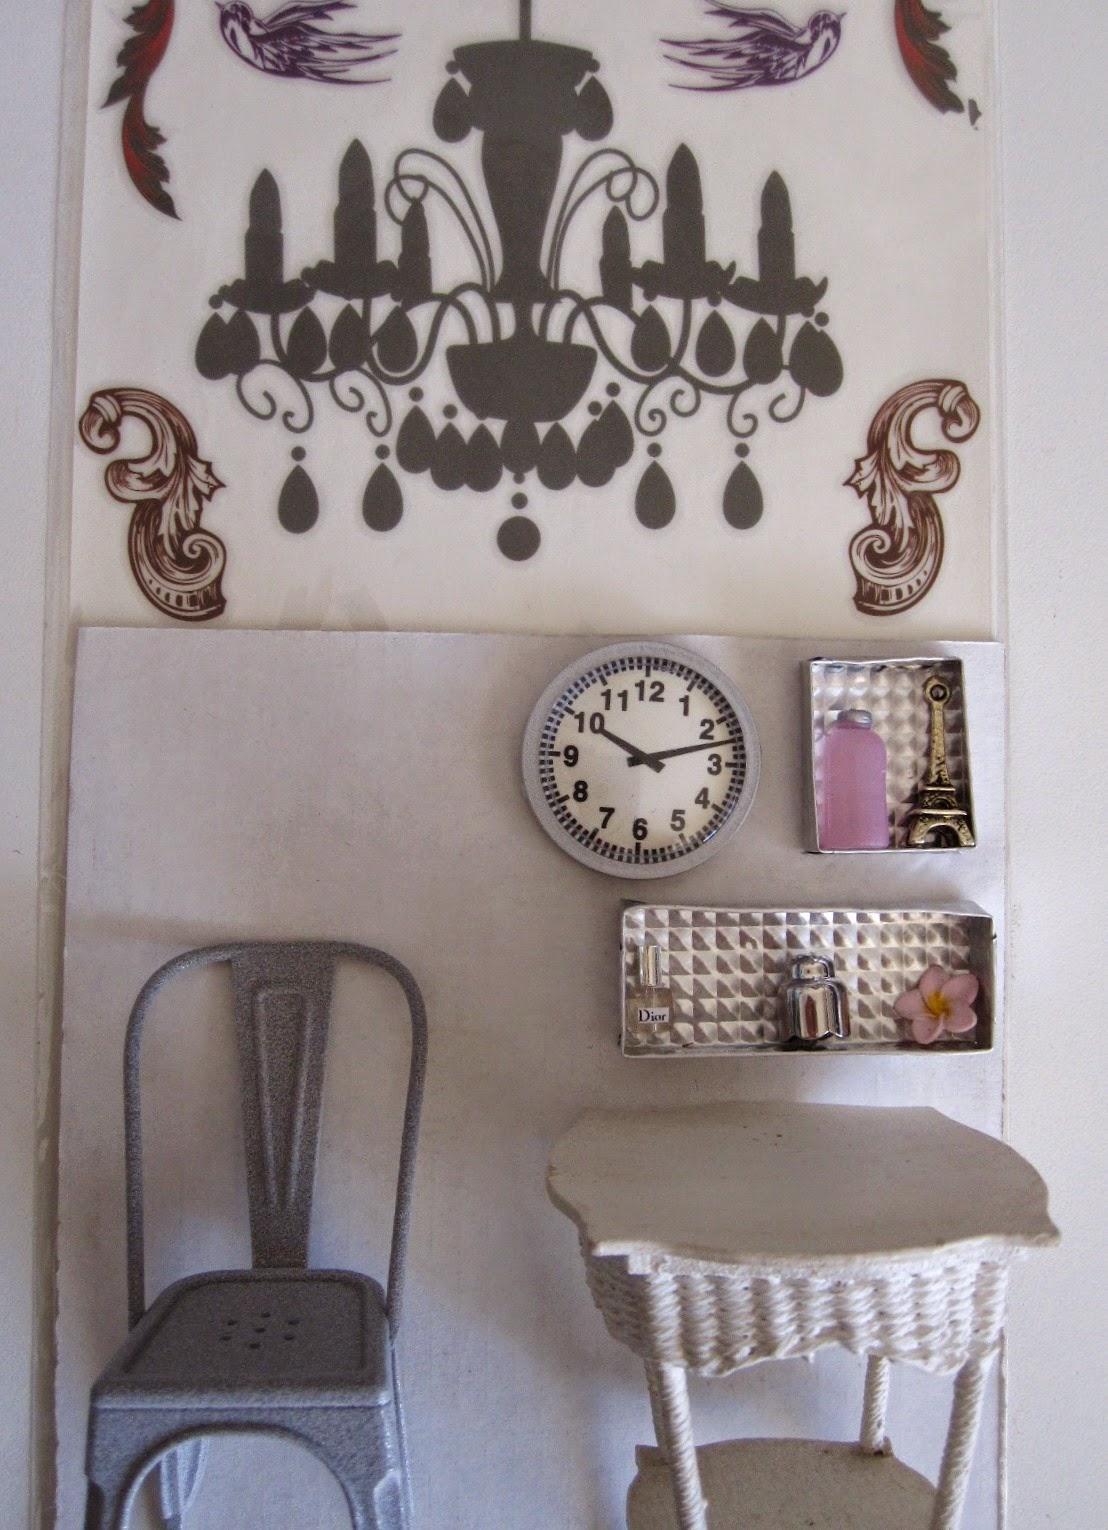 Selection of silver and white dolls house miniature furniture and accessories displayed under a rub-on chandelier sticker in its packet.